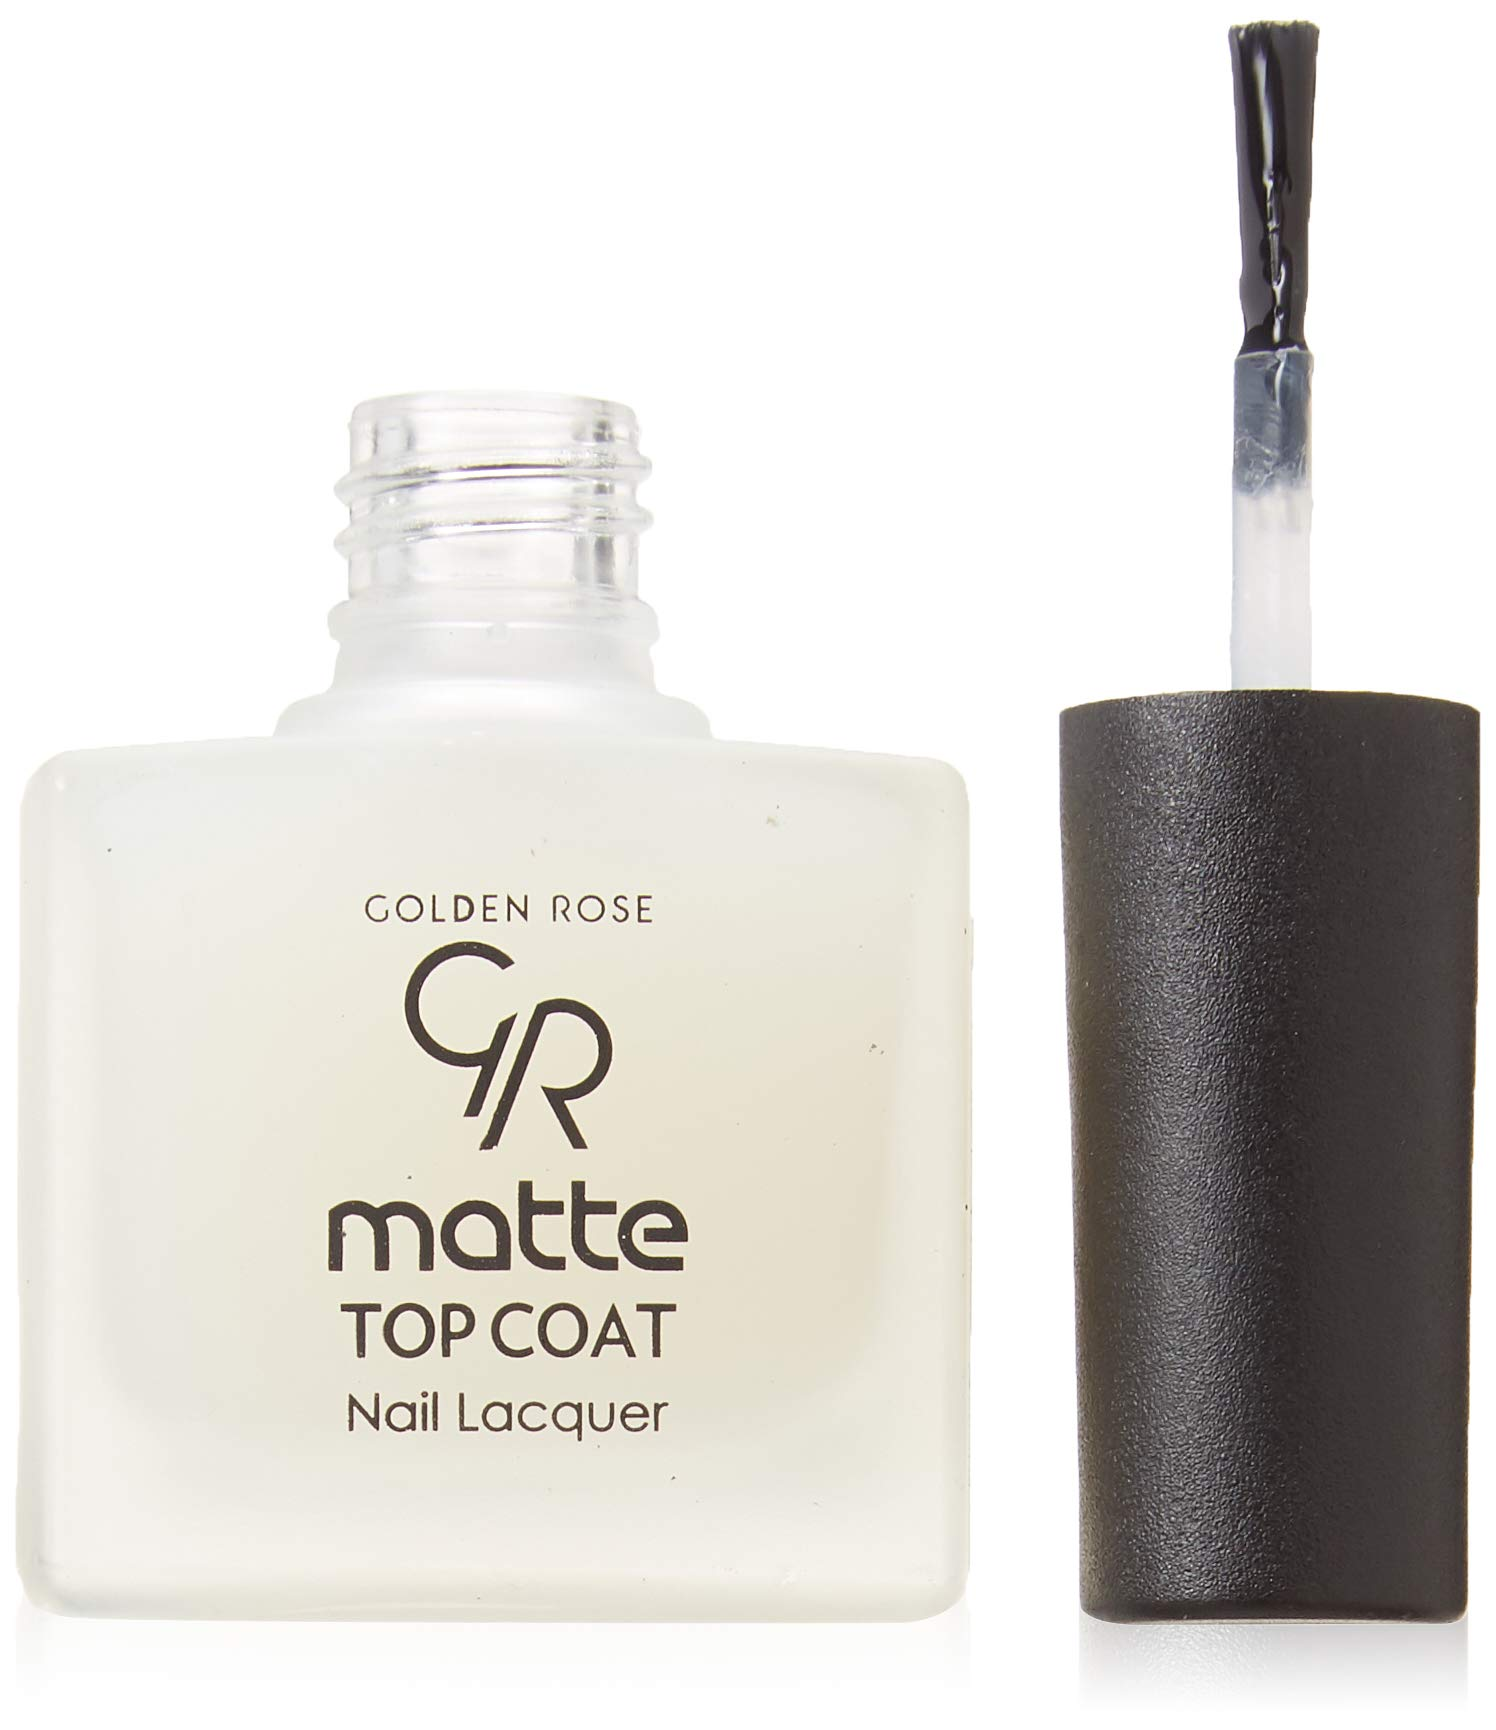 Golden Rose Matte Nail Polish Top Coat